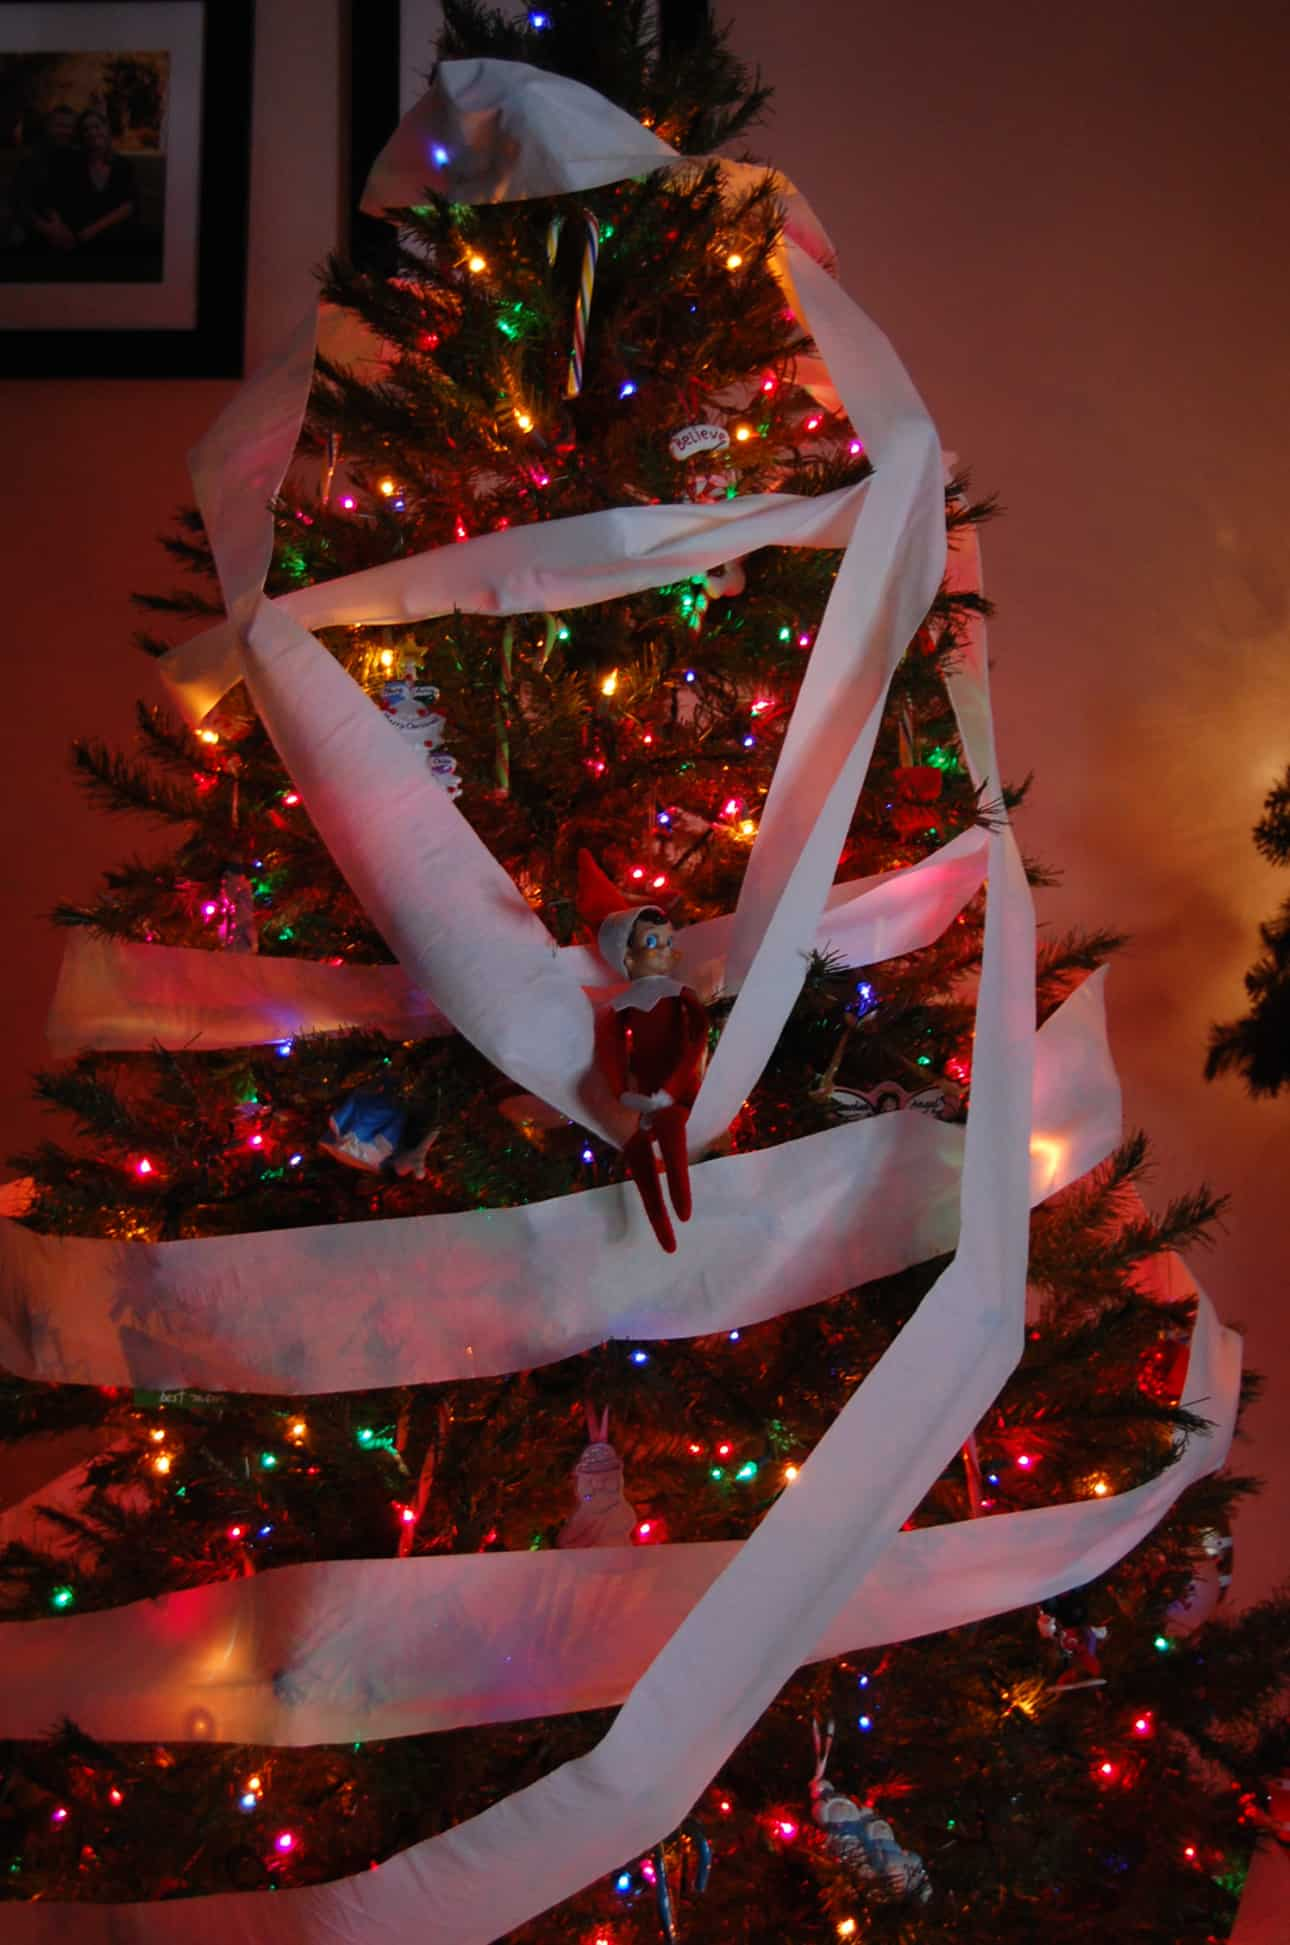 96.Elfie decorates the Christmas Tree with Toilet Paper